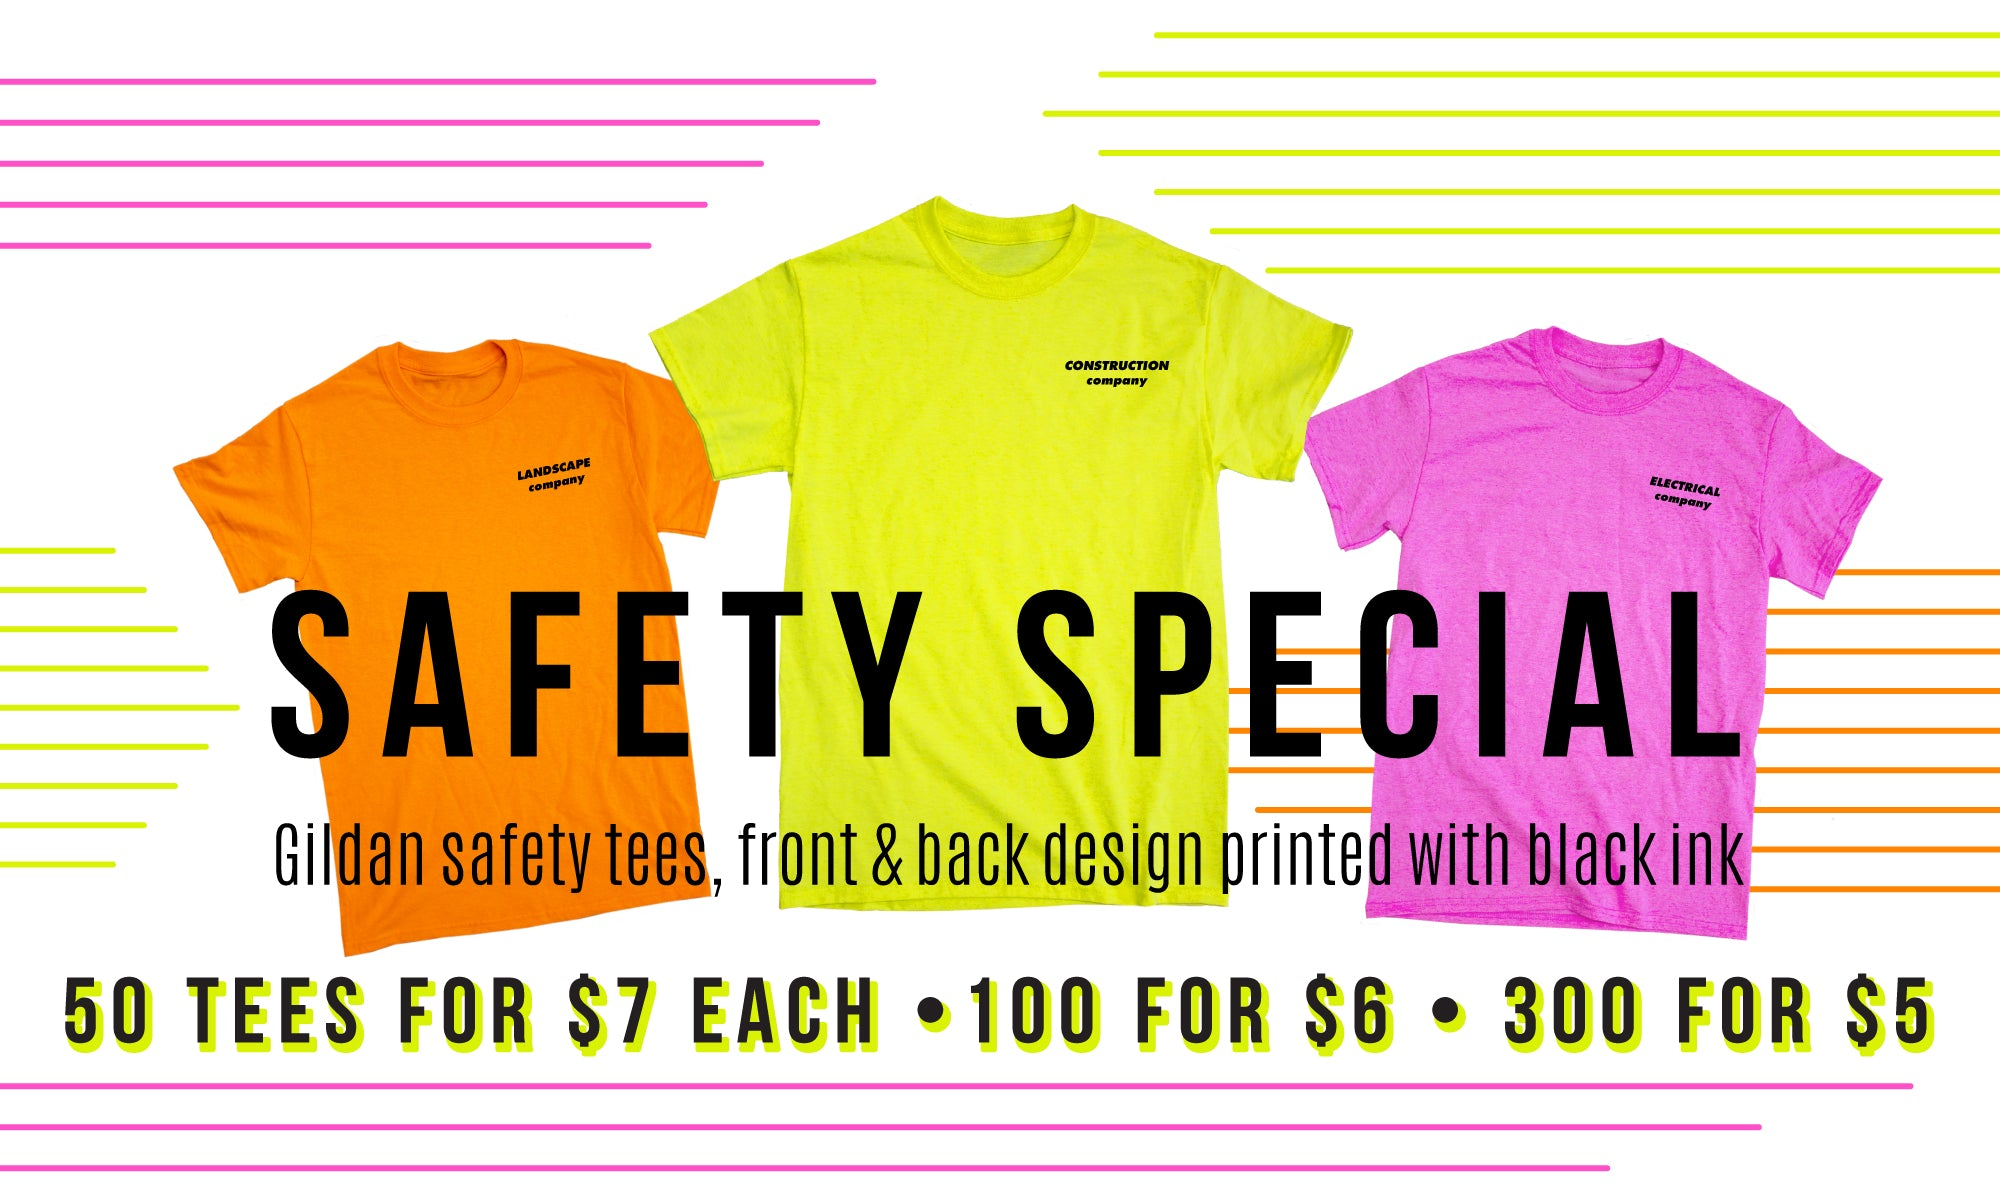 Special Sale of Gildan G2000 Safety T-shirts screen printed front and back using black ink for Landscaping and construction companies at Strange Planet in Brockton, MA